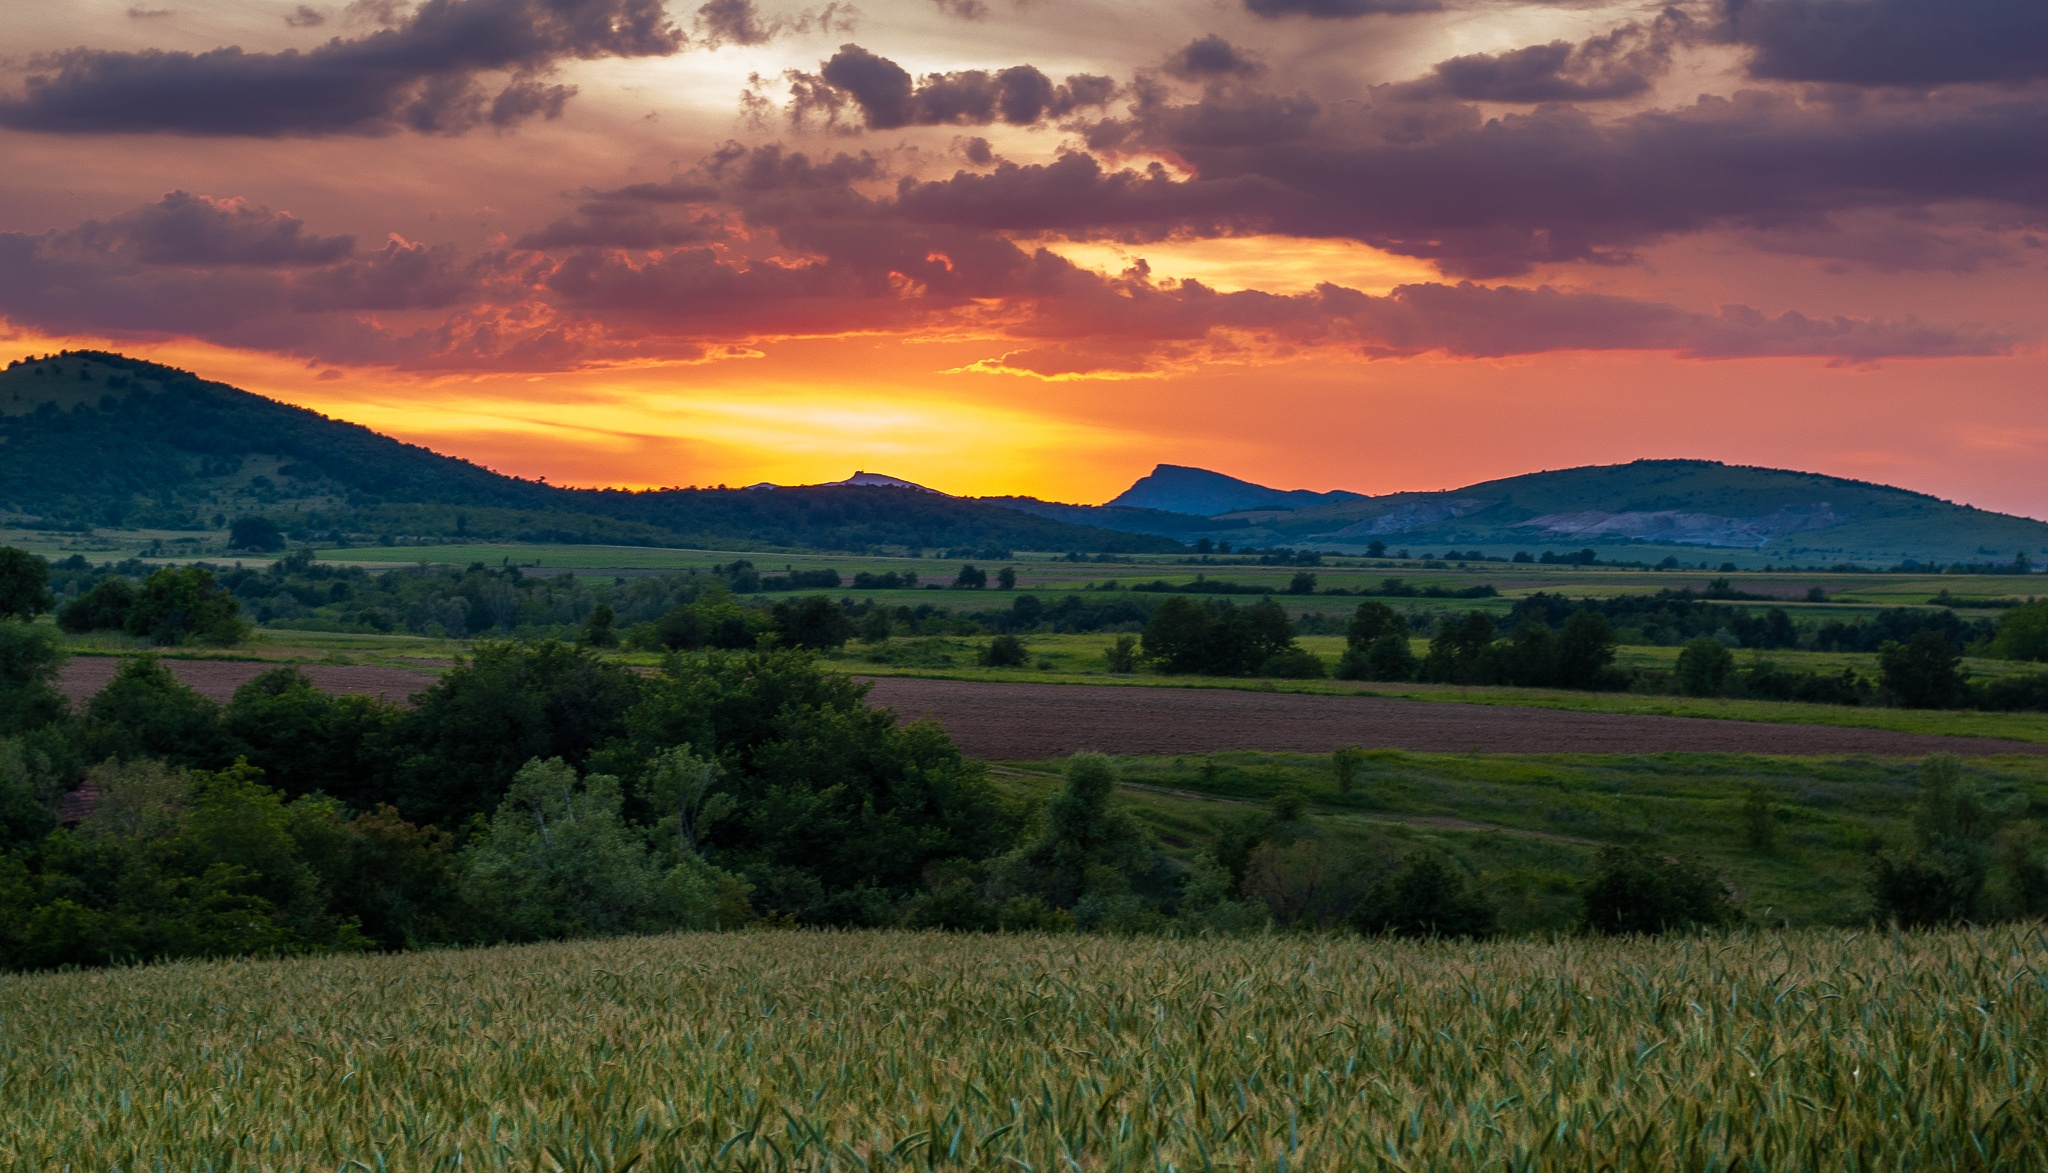 Photo in Landscape #landscape #landscapes #field #wheat #sunset #colorful #sky #nikon #bulgaria